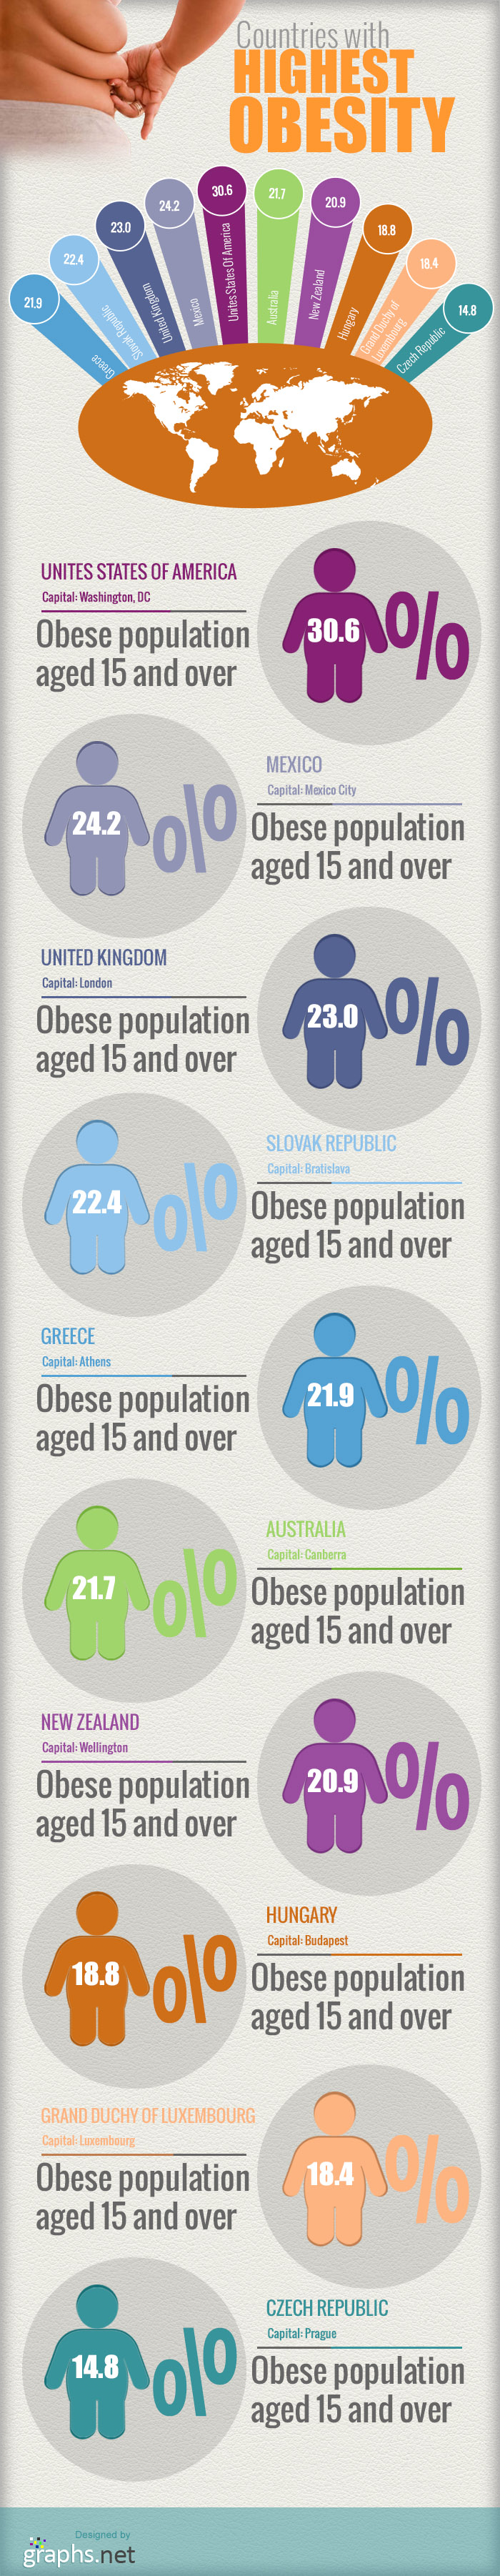 Top Countries With Highest Obesity